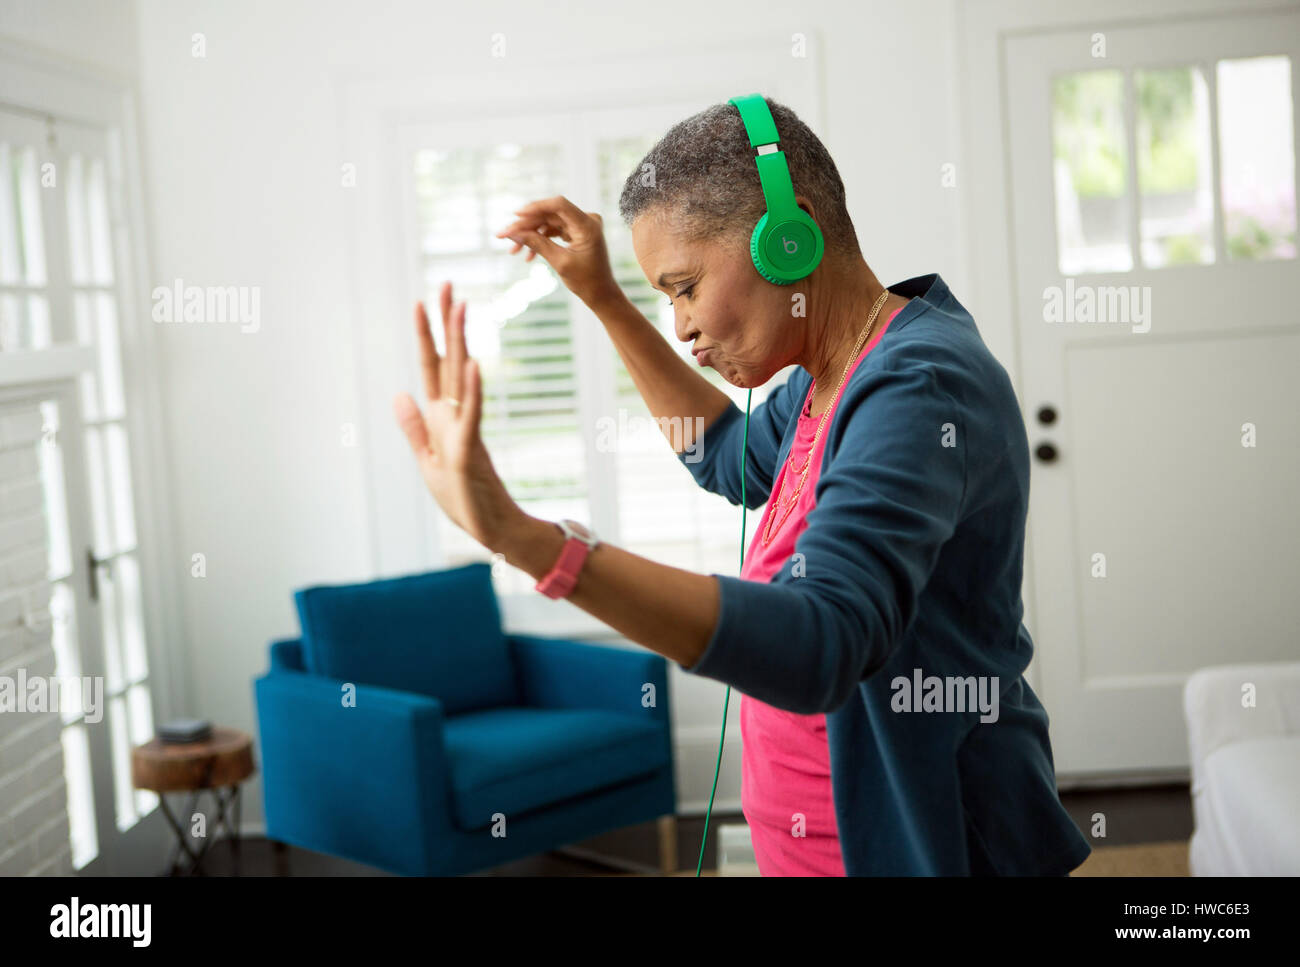 Senior woman listening to music on headphones - Stock Image